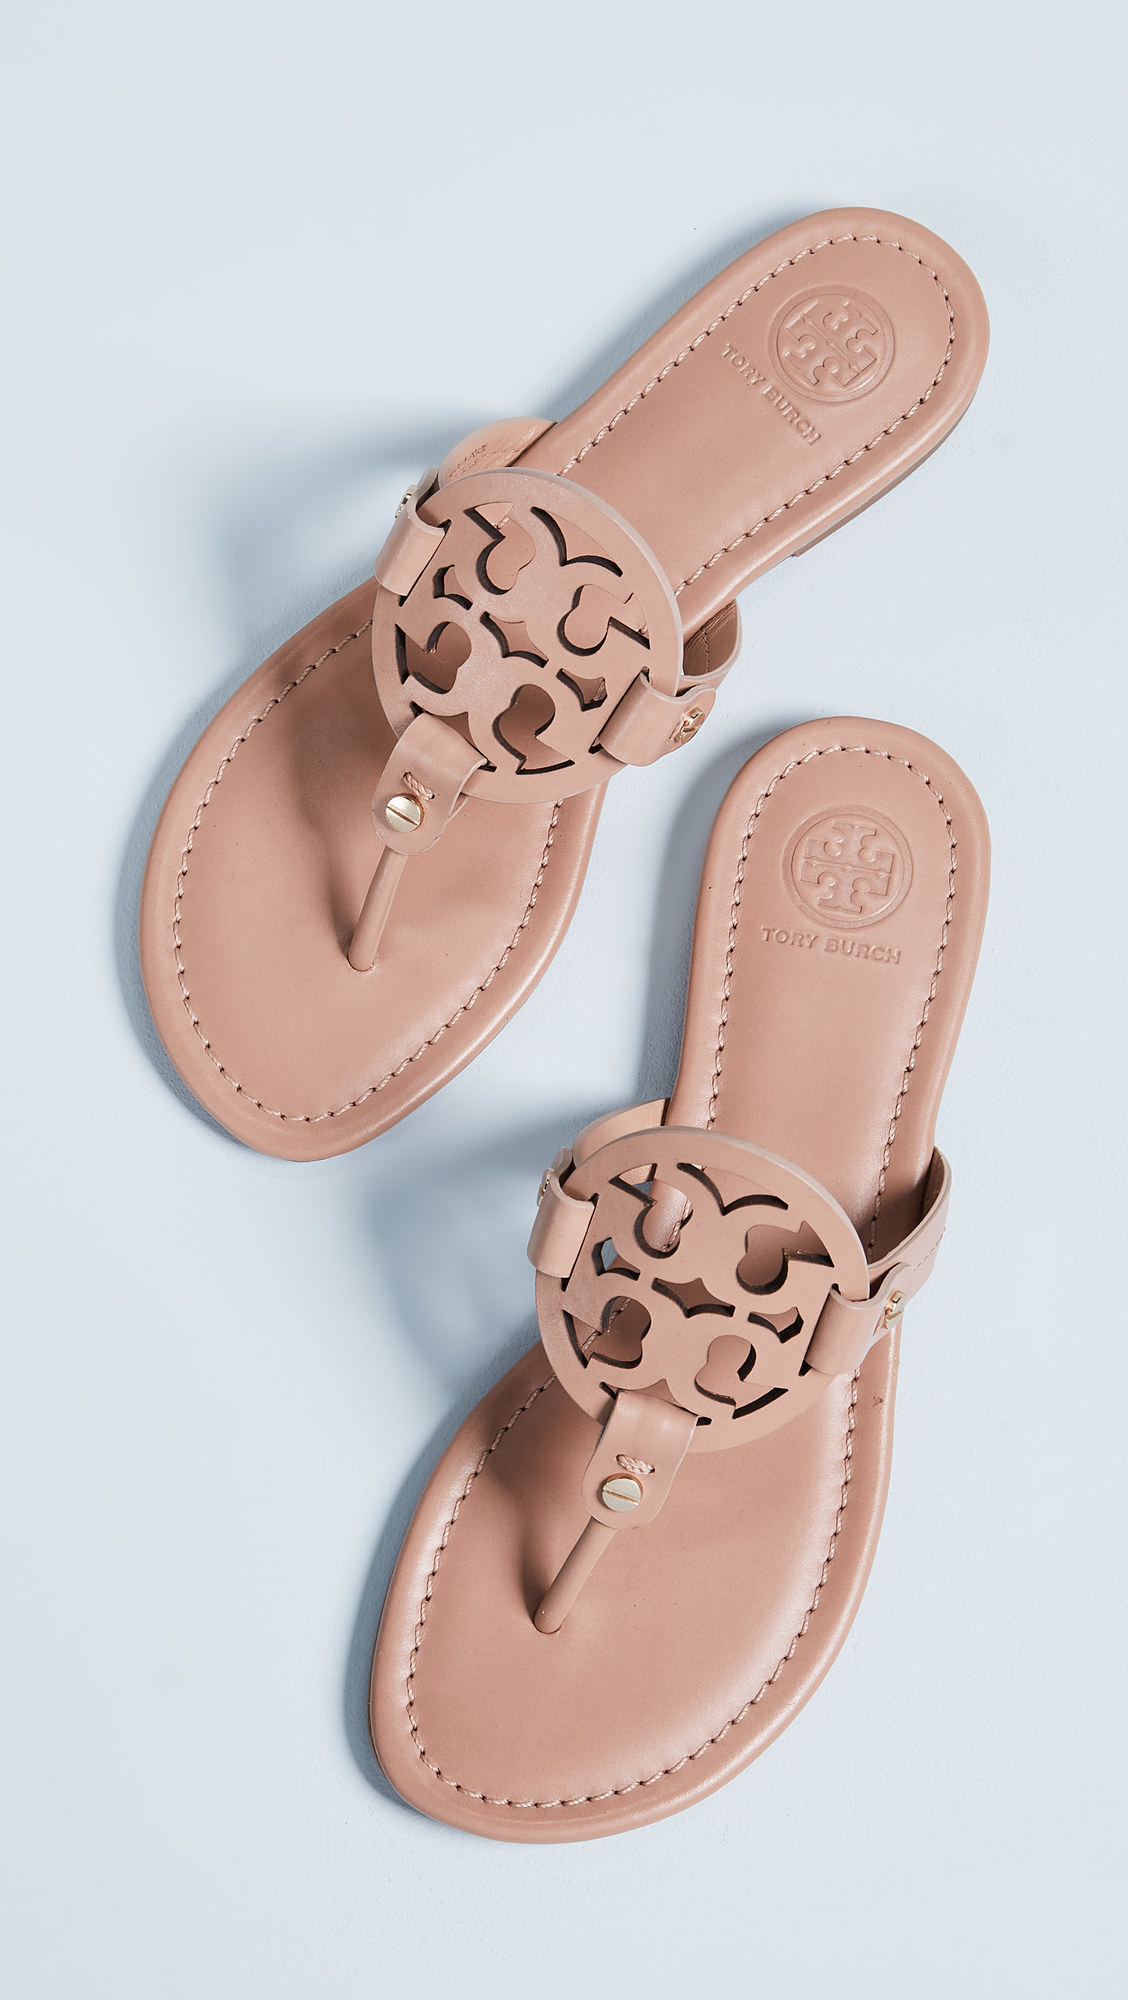 thong sandals in a nude color with the straps connected to a circular tory burch logo